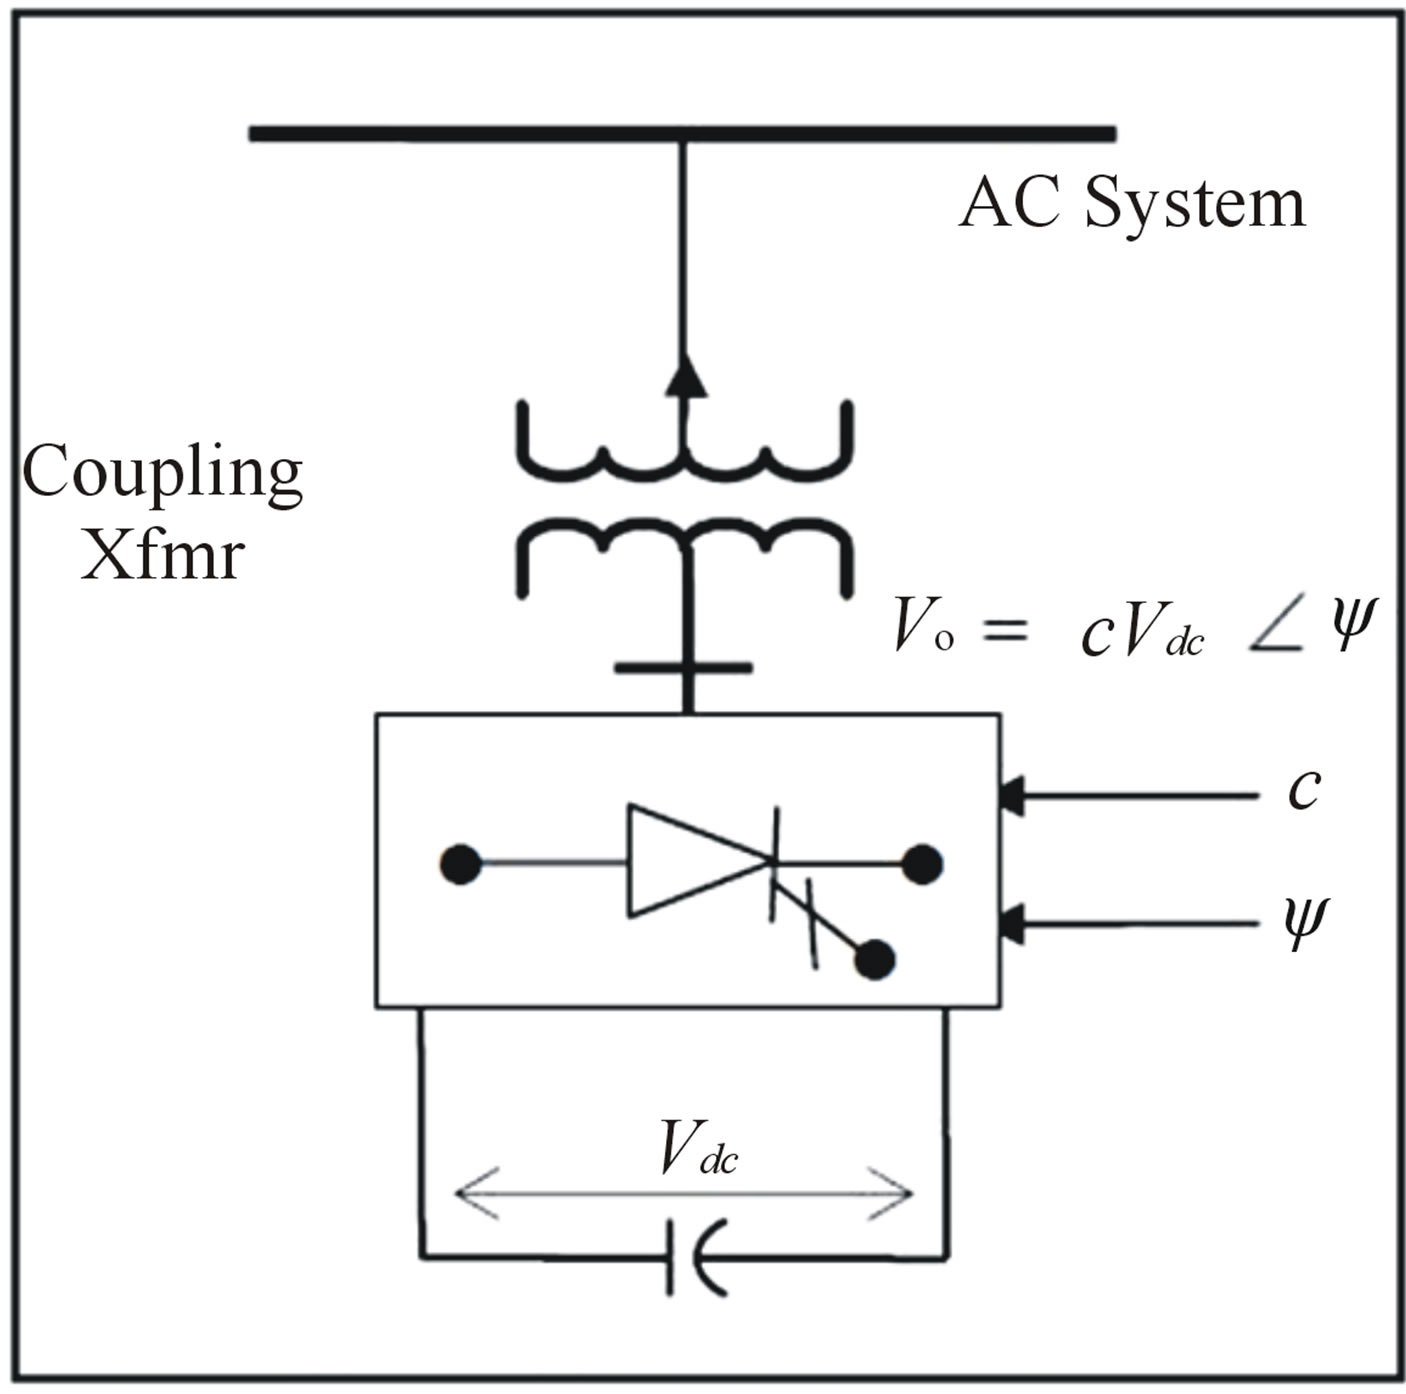 statcom thesis The statcom control scheme for the grid connected hybrid energy generation  system  therefore, this thesis examines the use of static synchronous com.